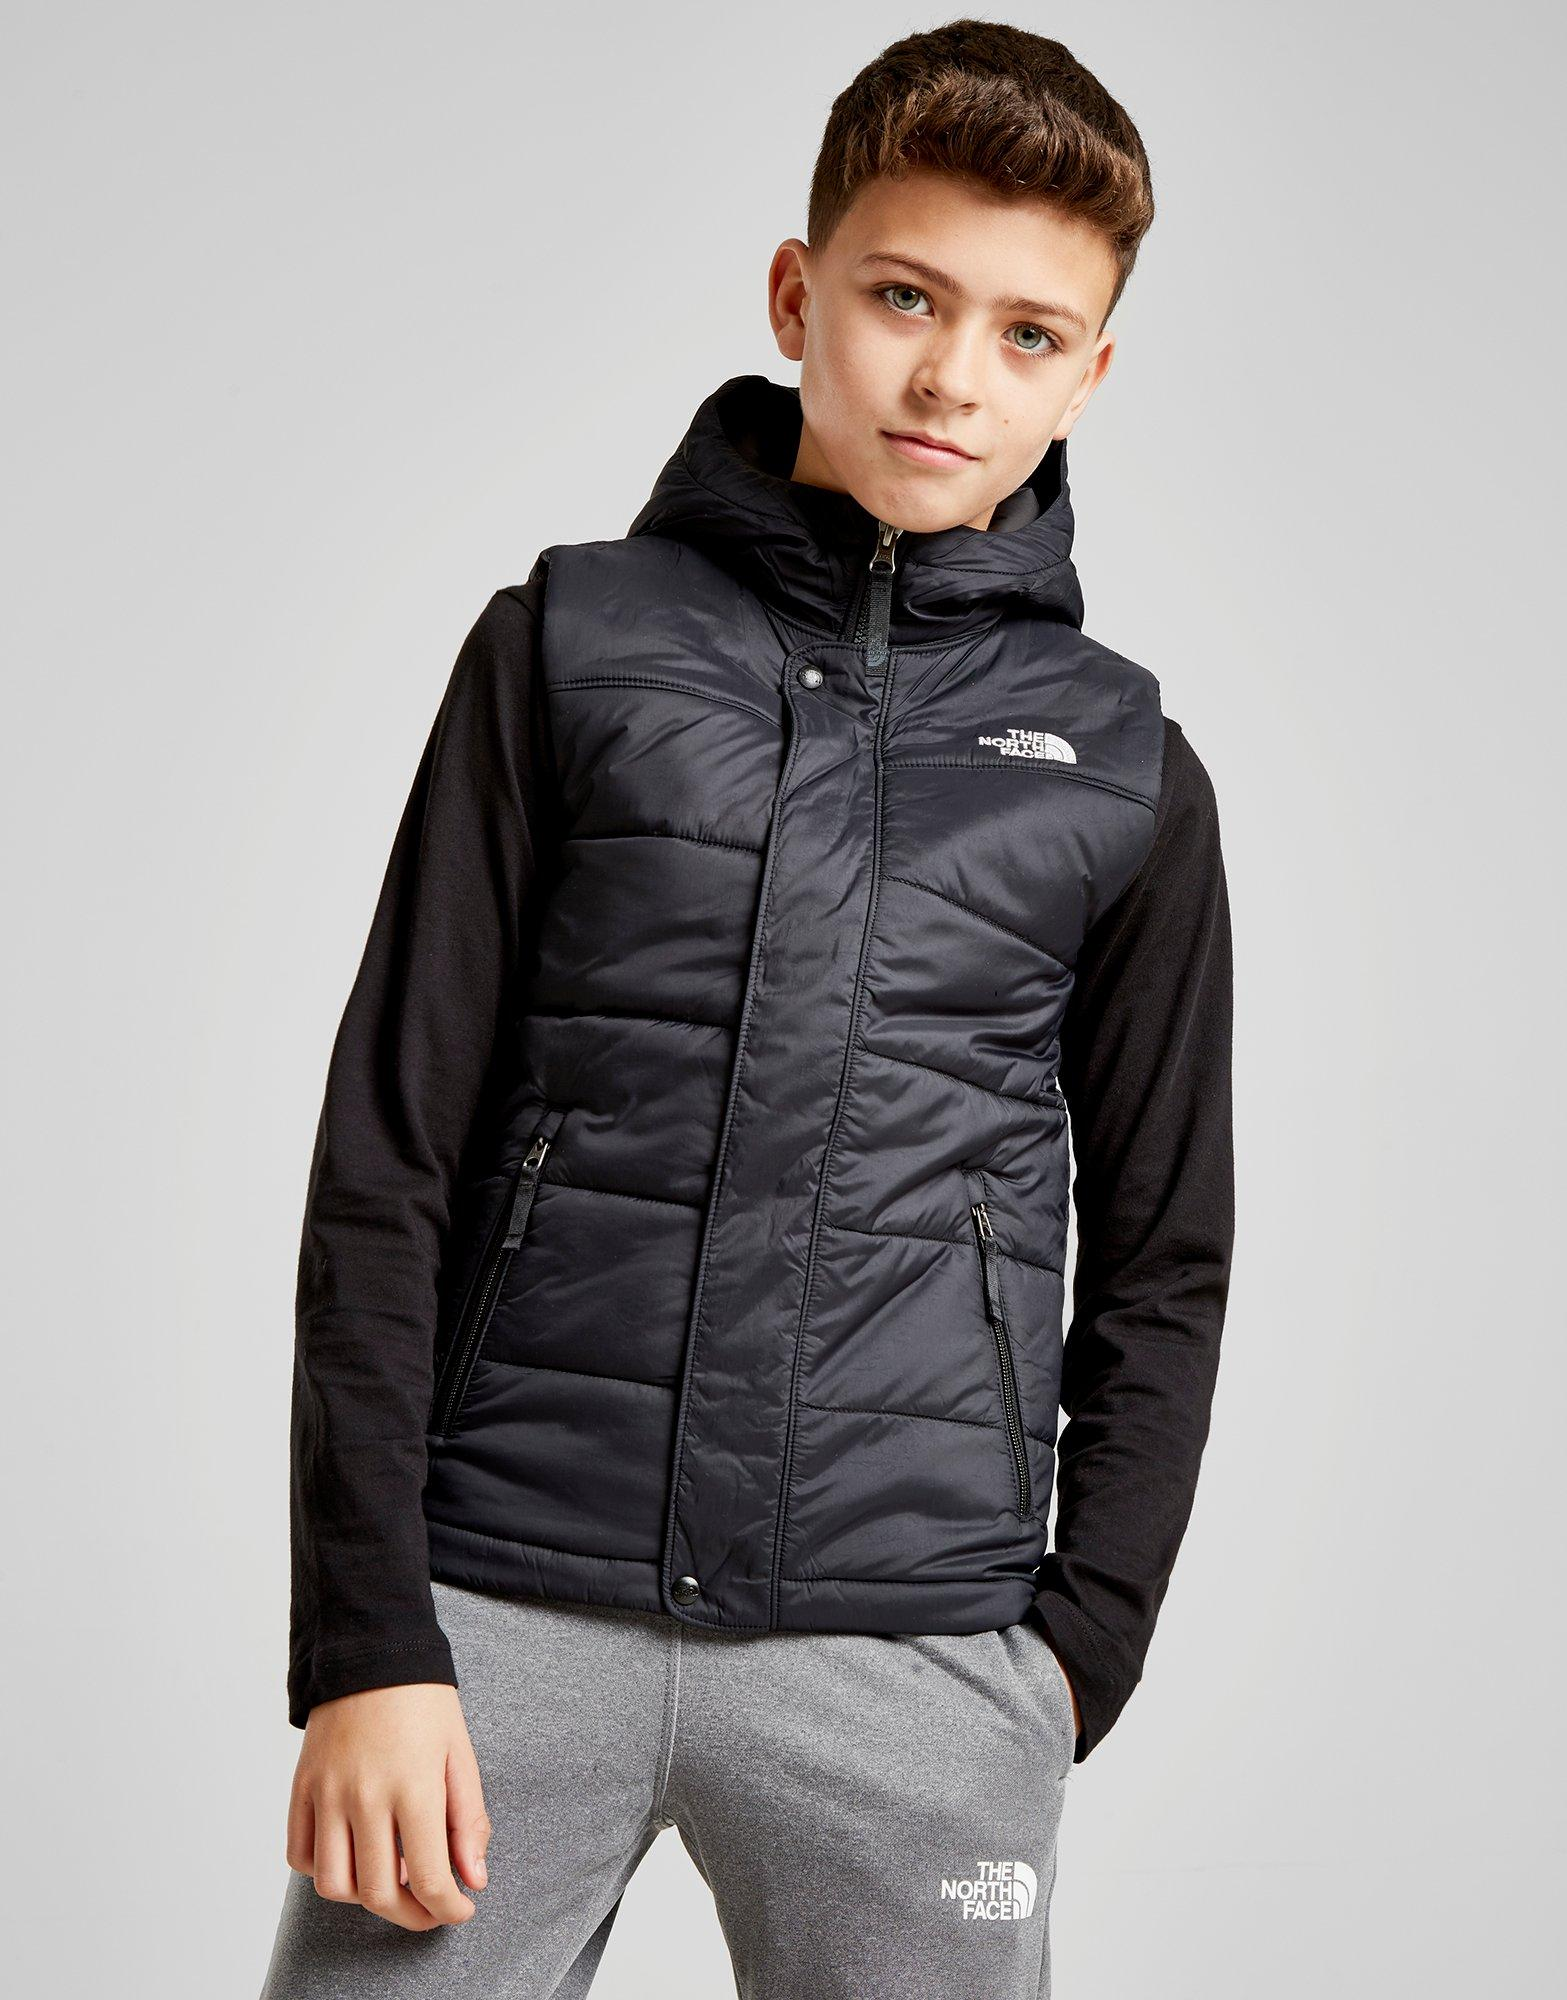 Cheap JD Sports Australia Boys Clothing Store products online Australia 323877a365595